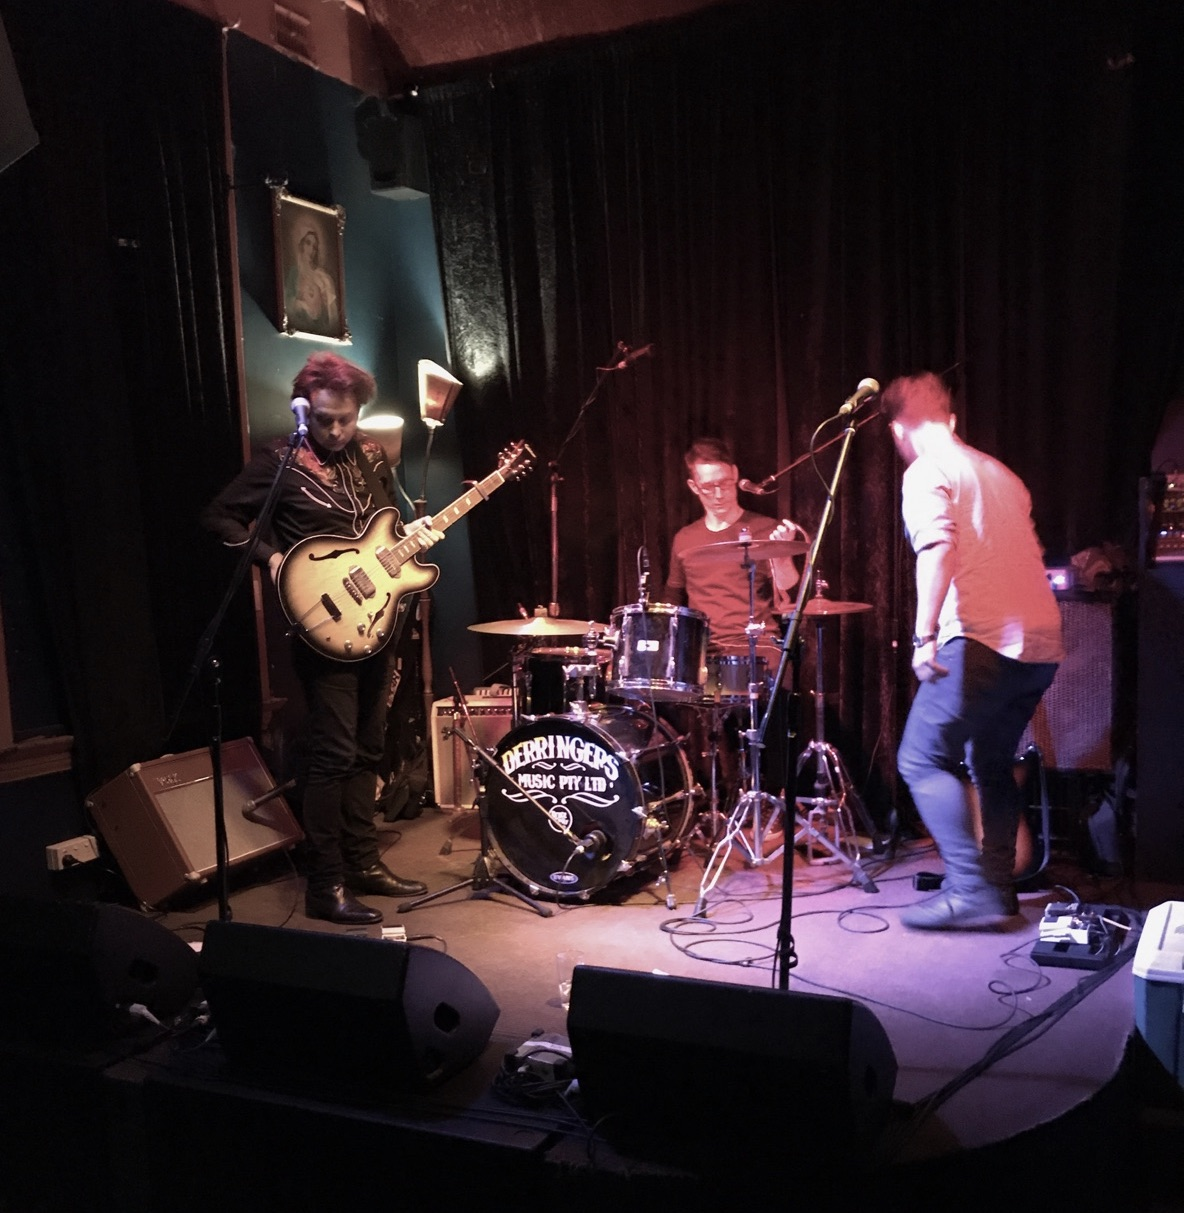 CP Experiment at The Grace Emily, Adelaide, 29/7/2017. Photo by Sonja Lisk.